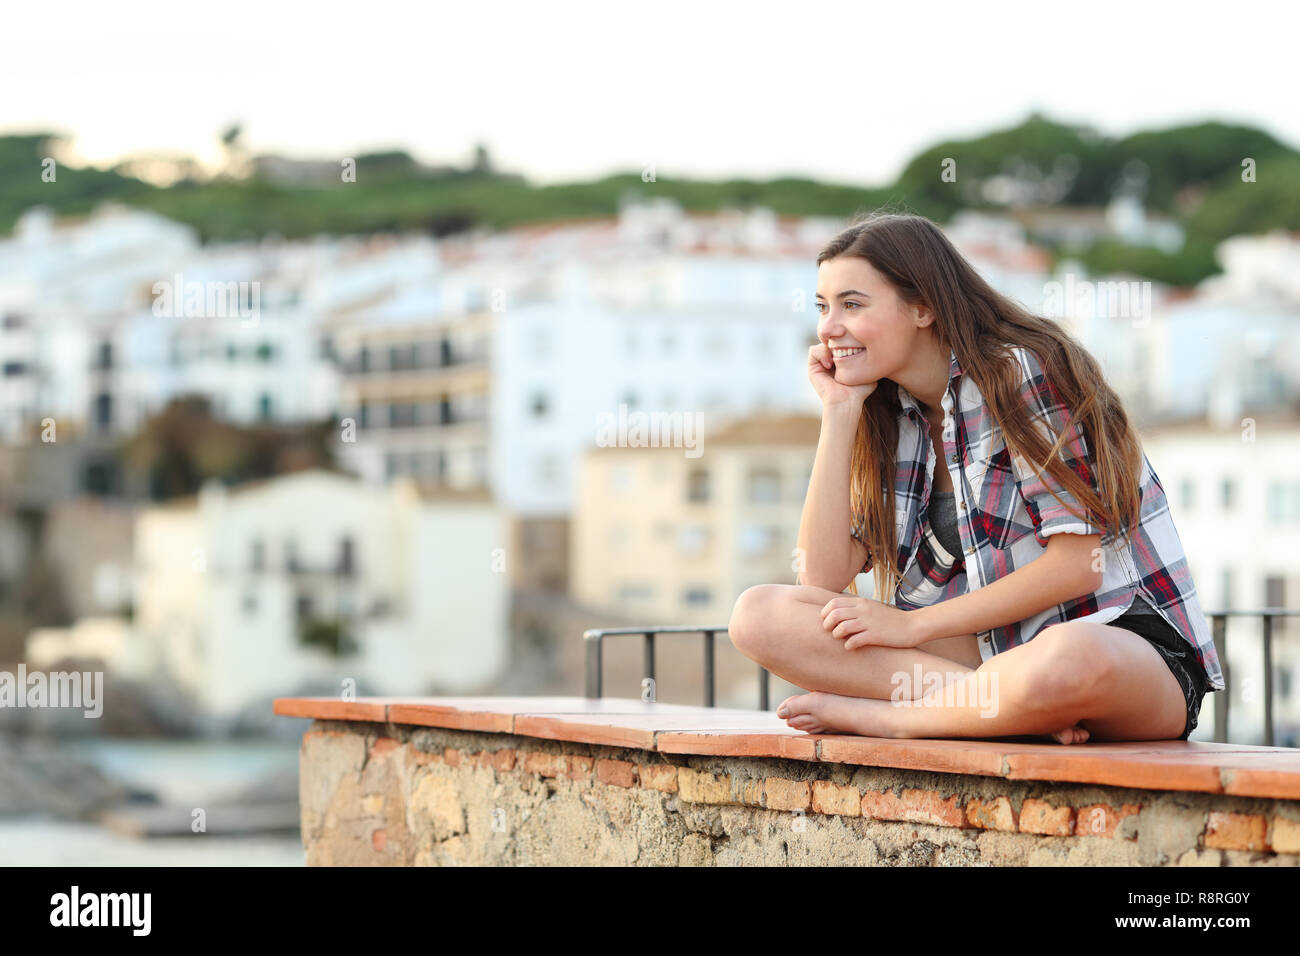 Pensive happy teenage girl contemplating hozizon sitting on a ledge in a coast town - Stock Image